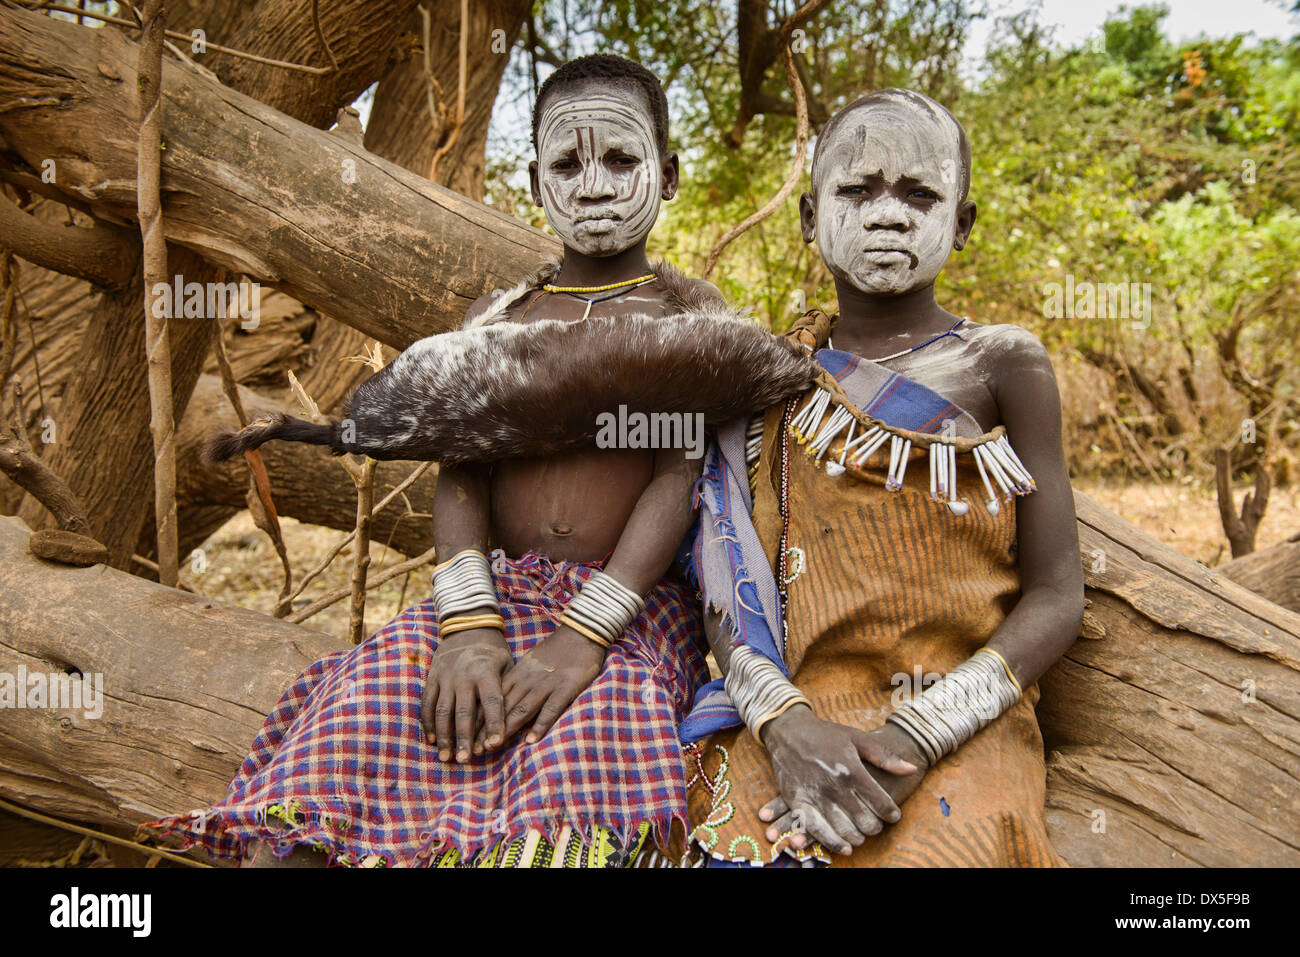 Mursi boys in the Lower Omo Valley of Ethiopia - Stock Image